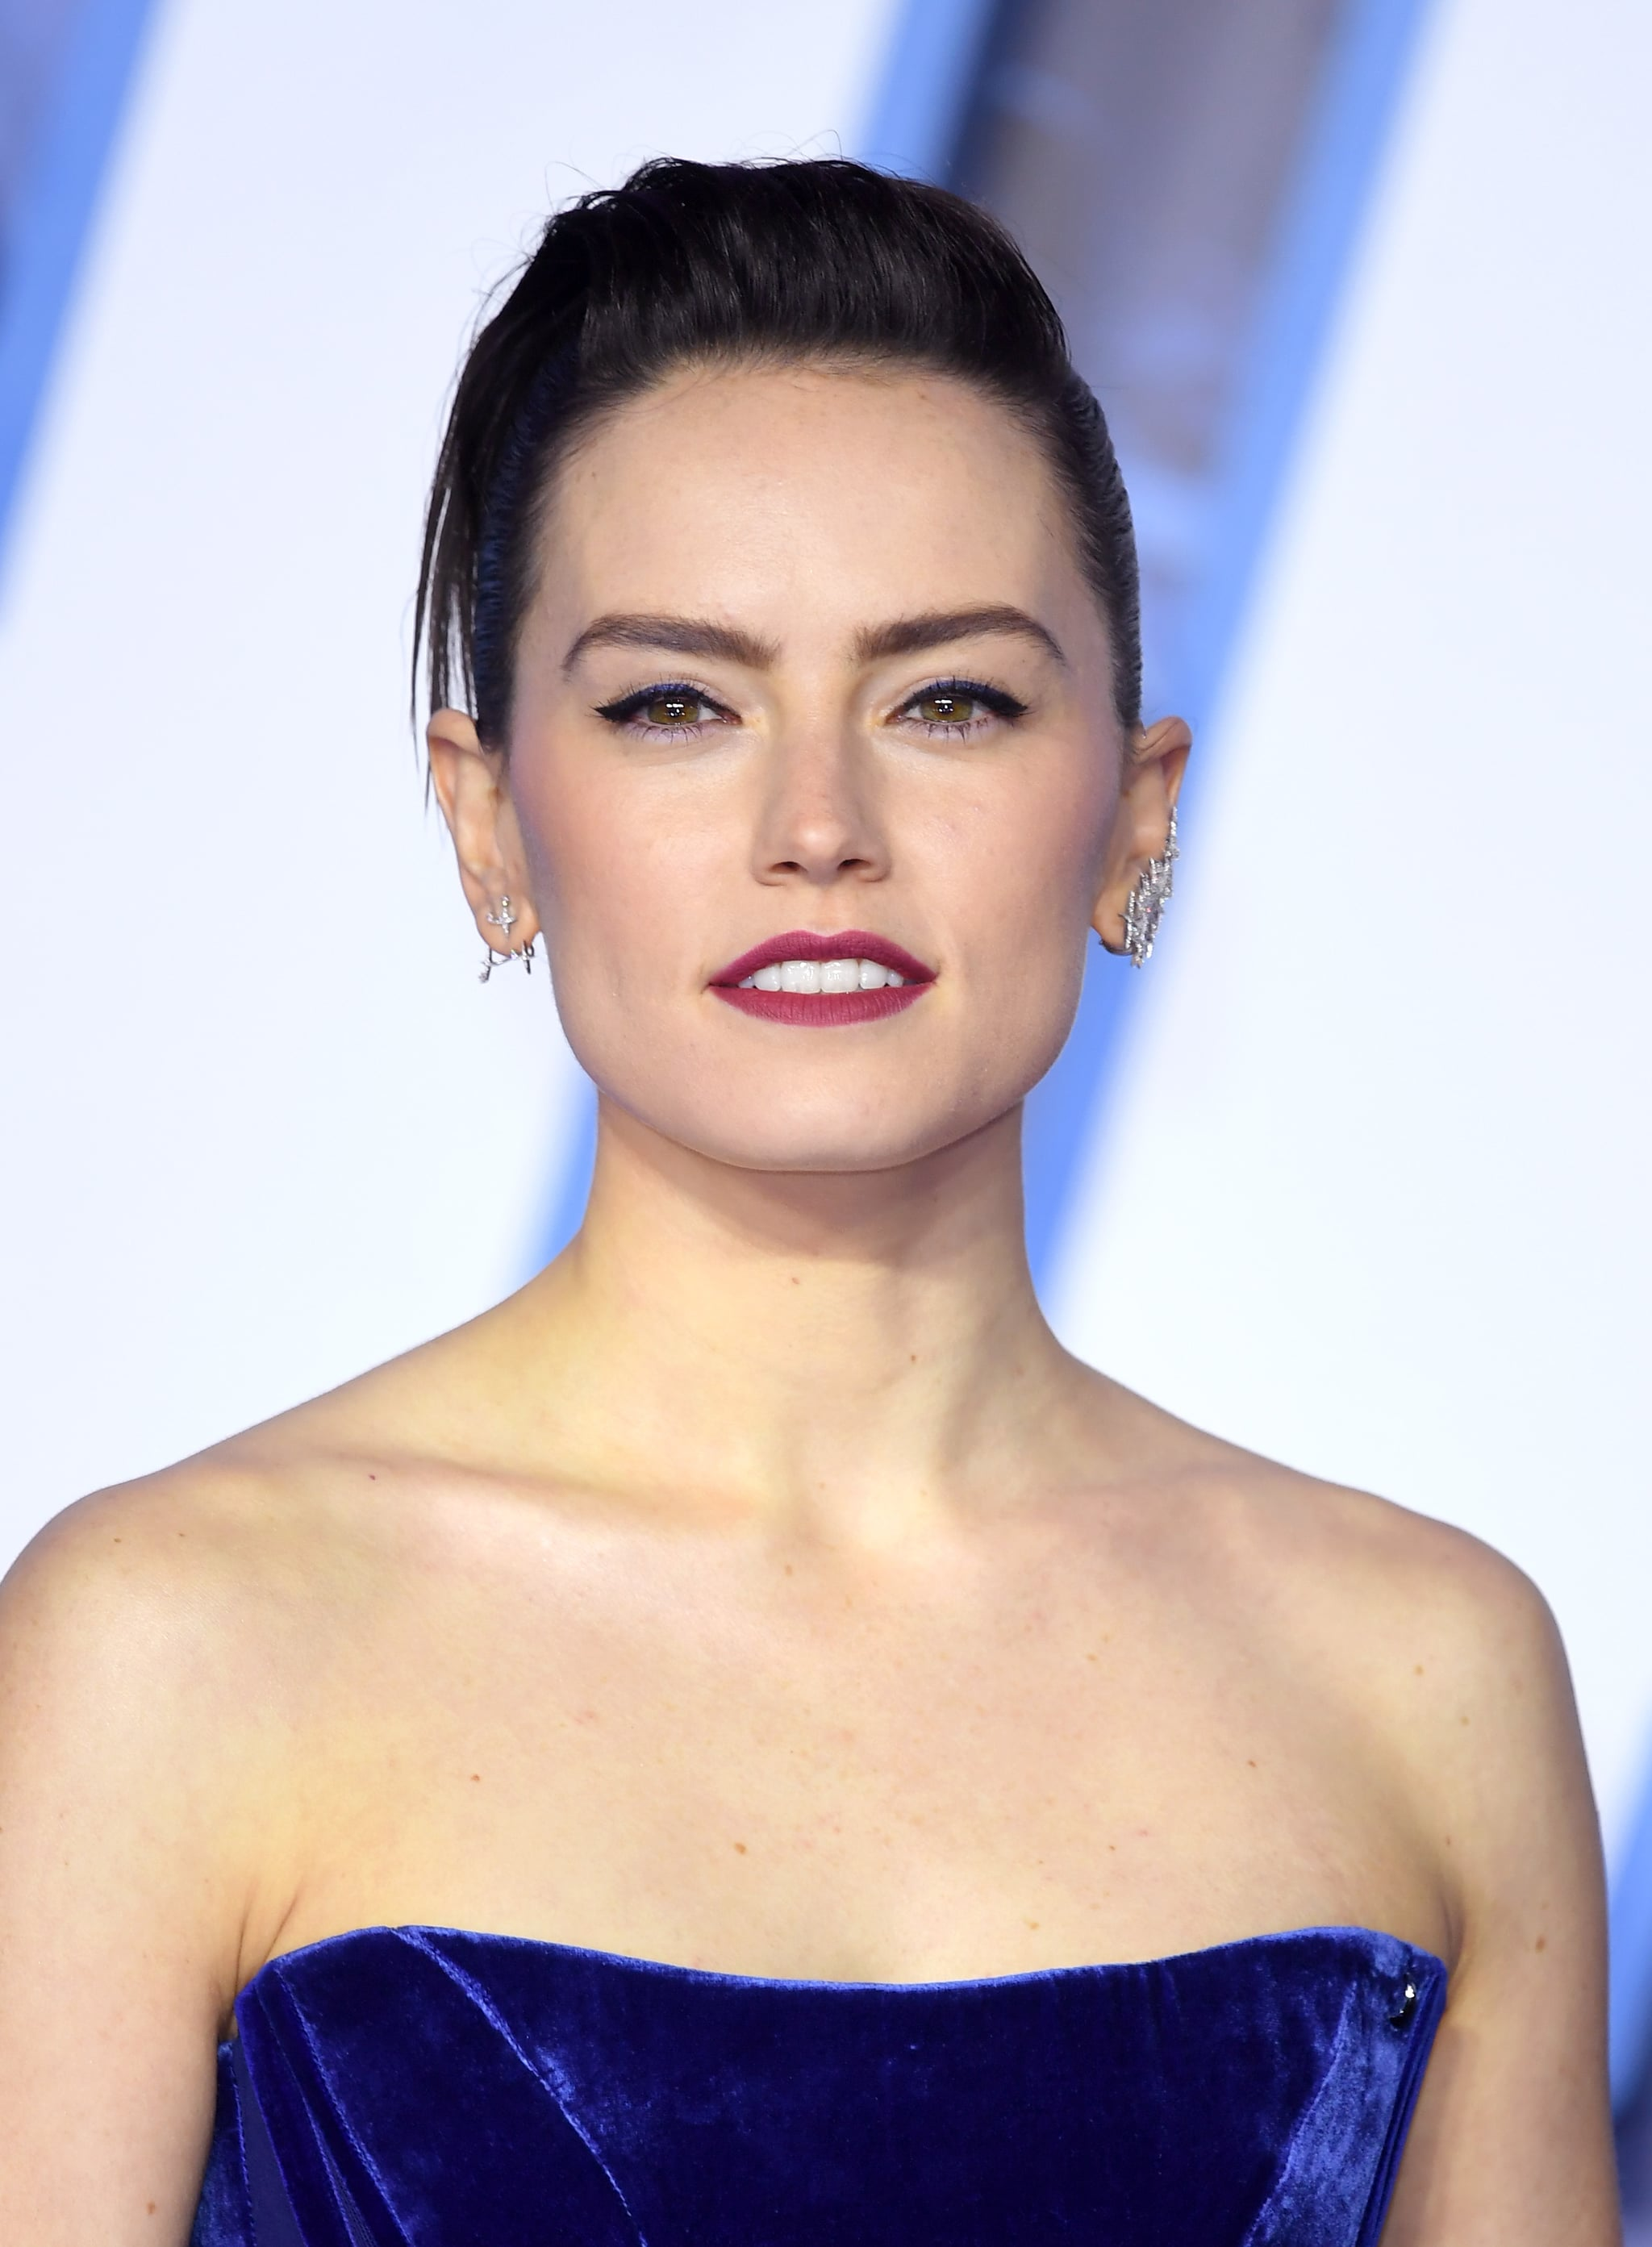 Daisy Ridley At The Star Wars The Rise Of Skywalker European Premiere Daisy Ridley Is Regal Royal And Captivatingly Elegant On The Star Wars Red Carpet In London Popsugar Fashion